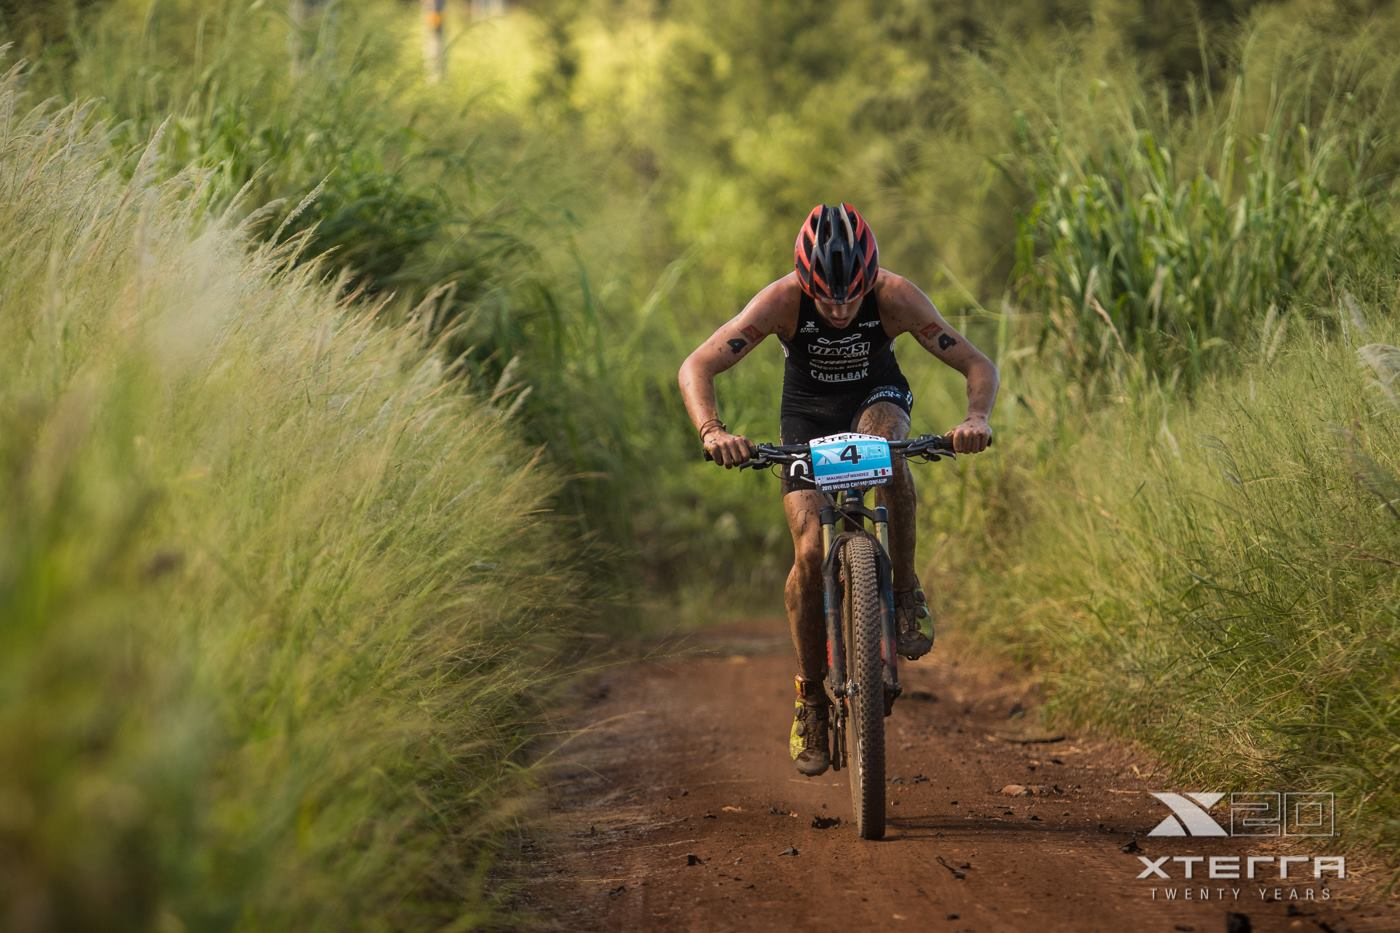 XTERRA_WORLD_CHAMPIONSHIP_2015_00037